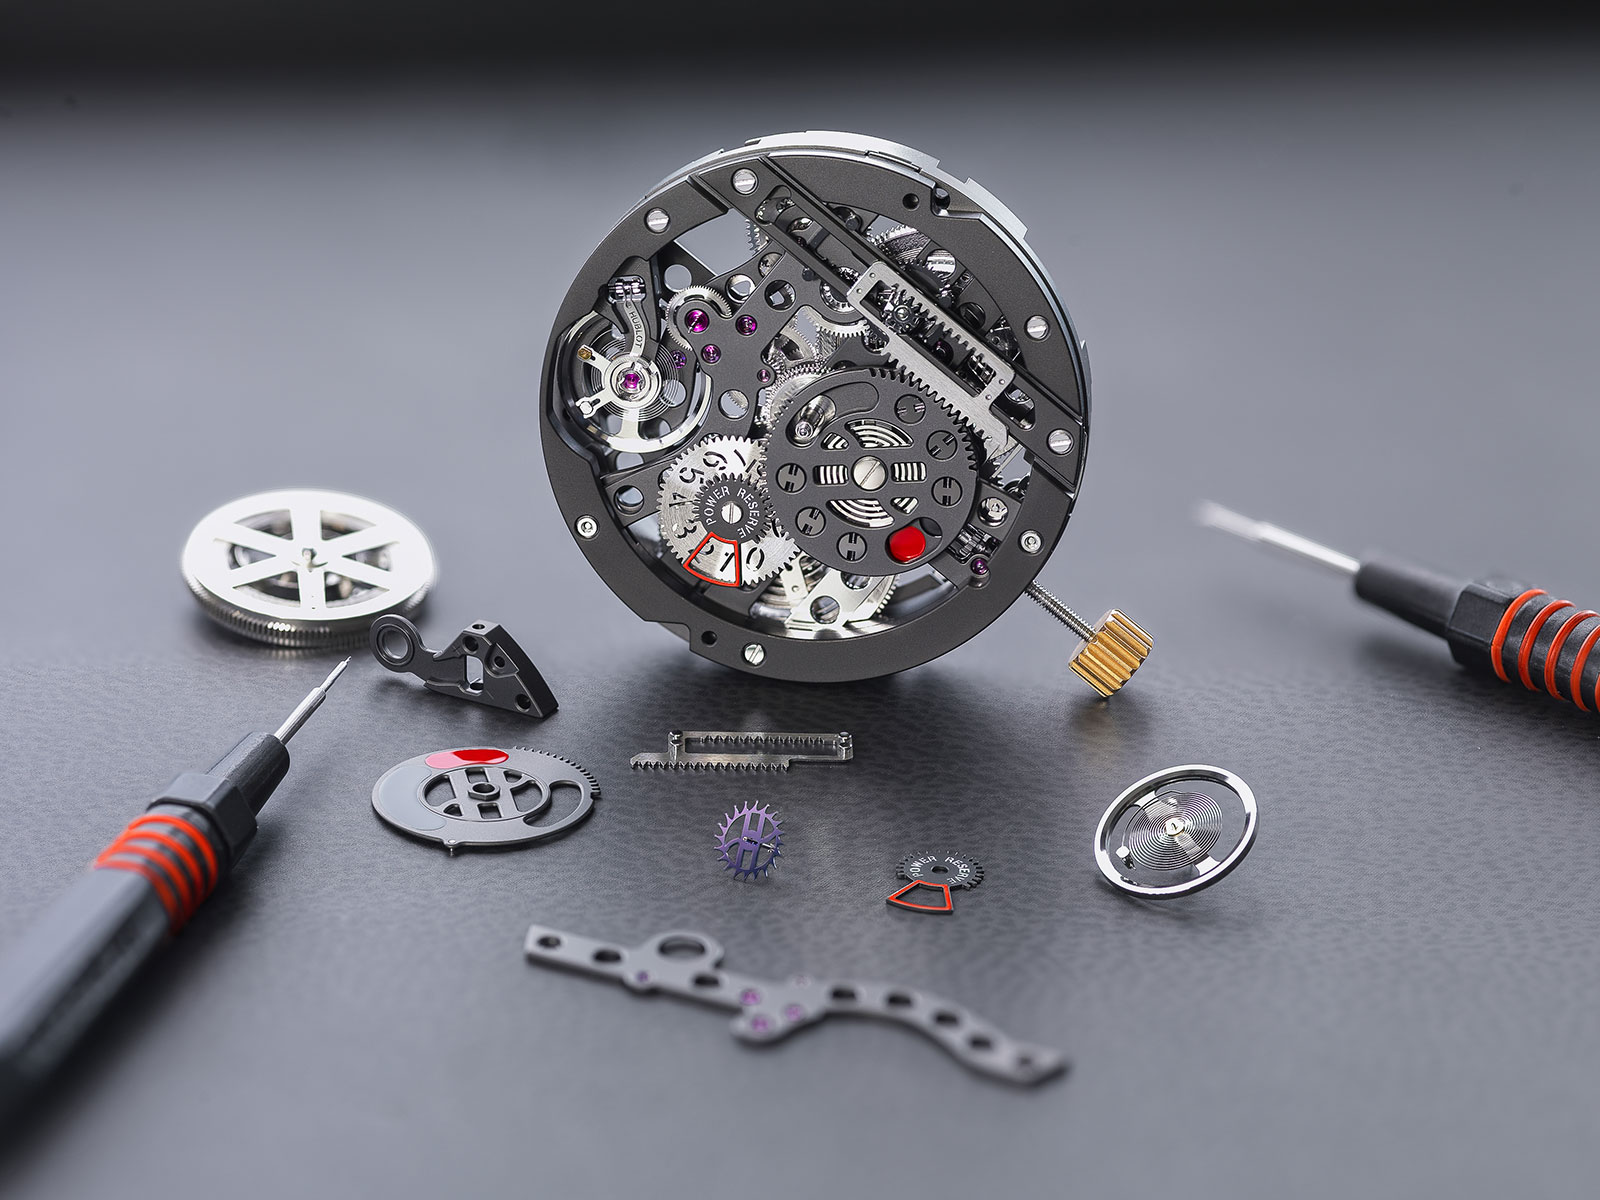 Hublot Big Bang MECA-10 movement 1